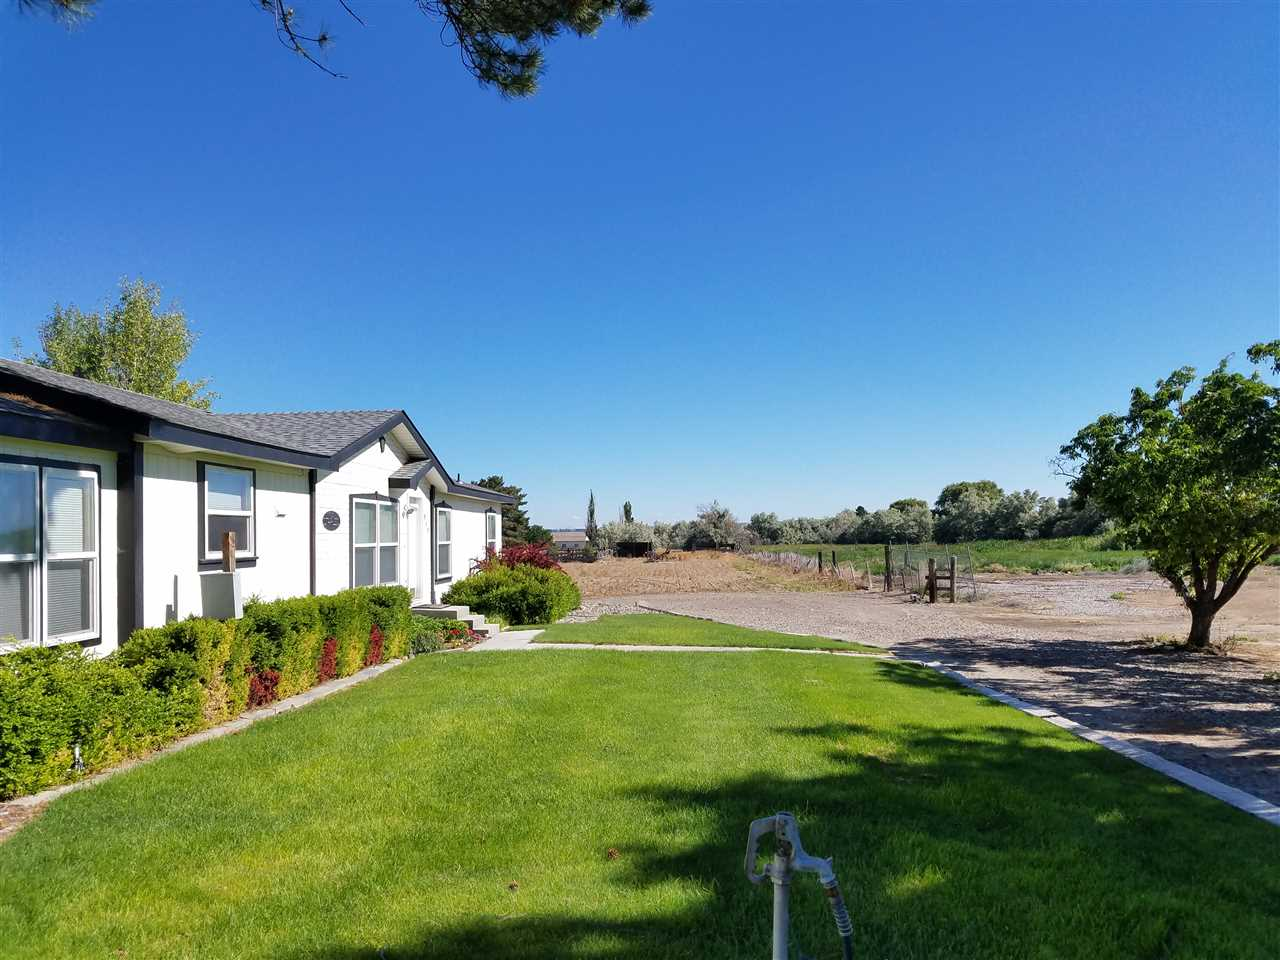 Commercial for Sale at 1907 &1923 Pole line Rd. E. 1907 &1923 Pole line Rd. E. Twin Falls, Idaho 83301